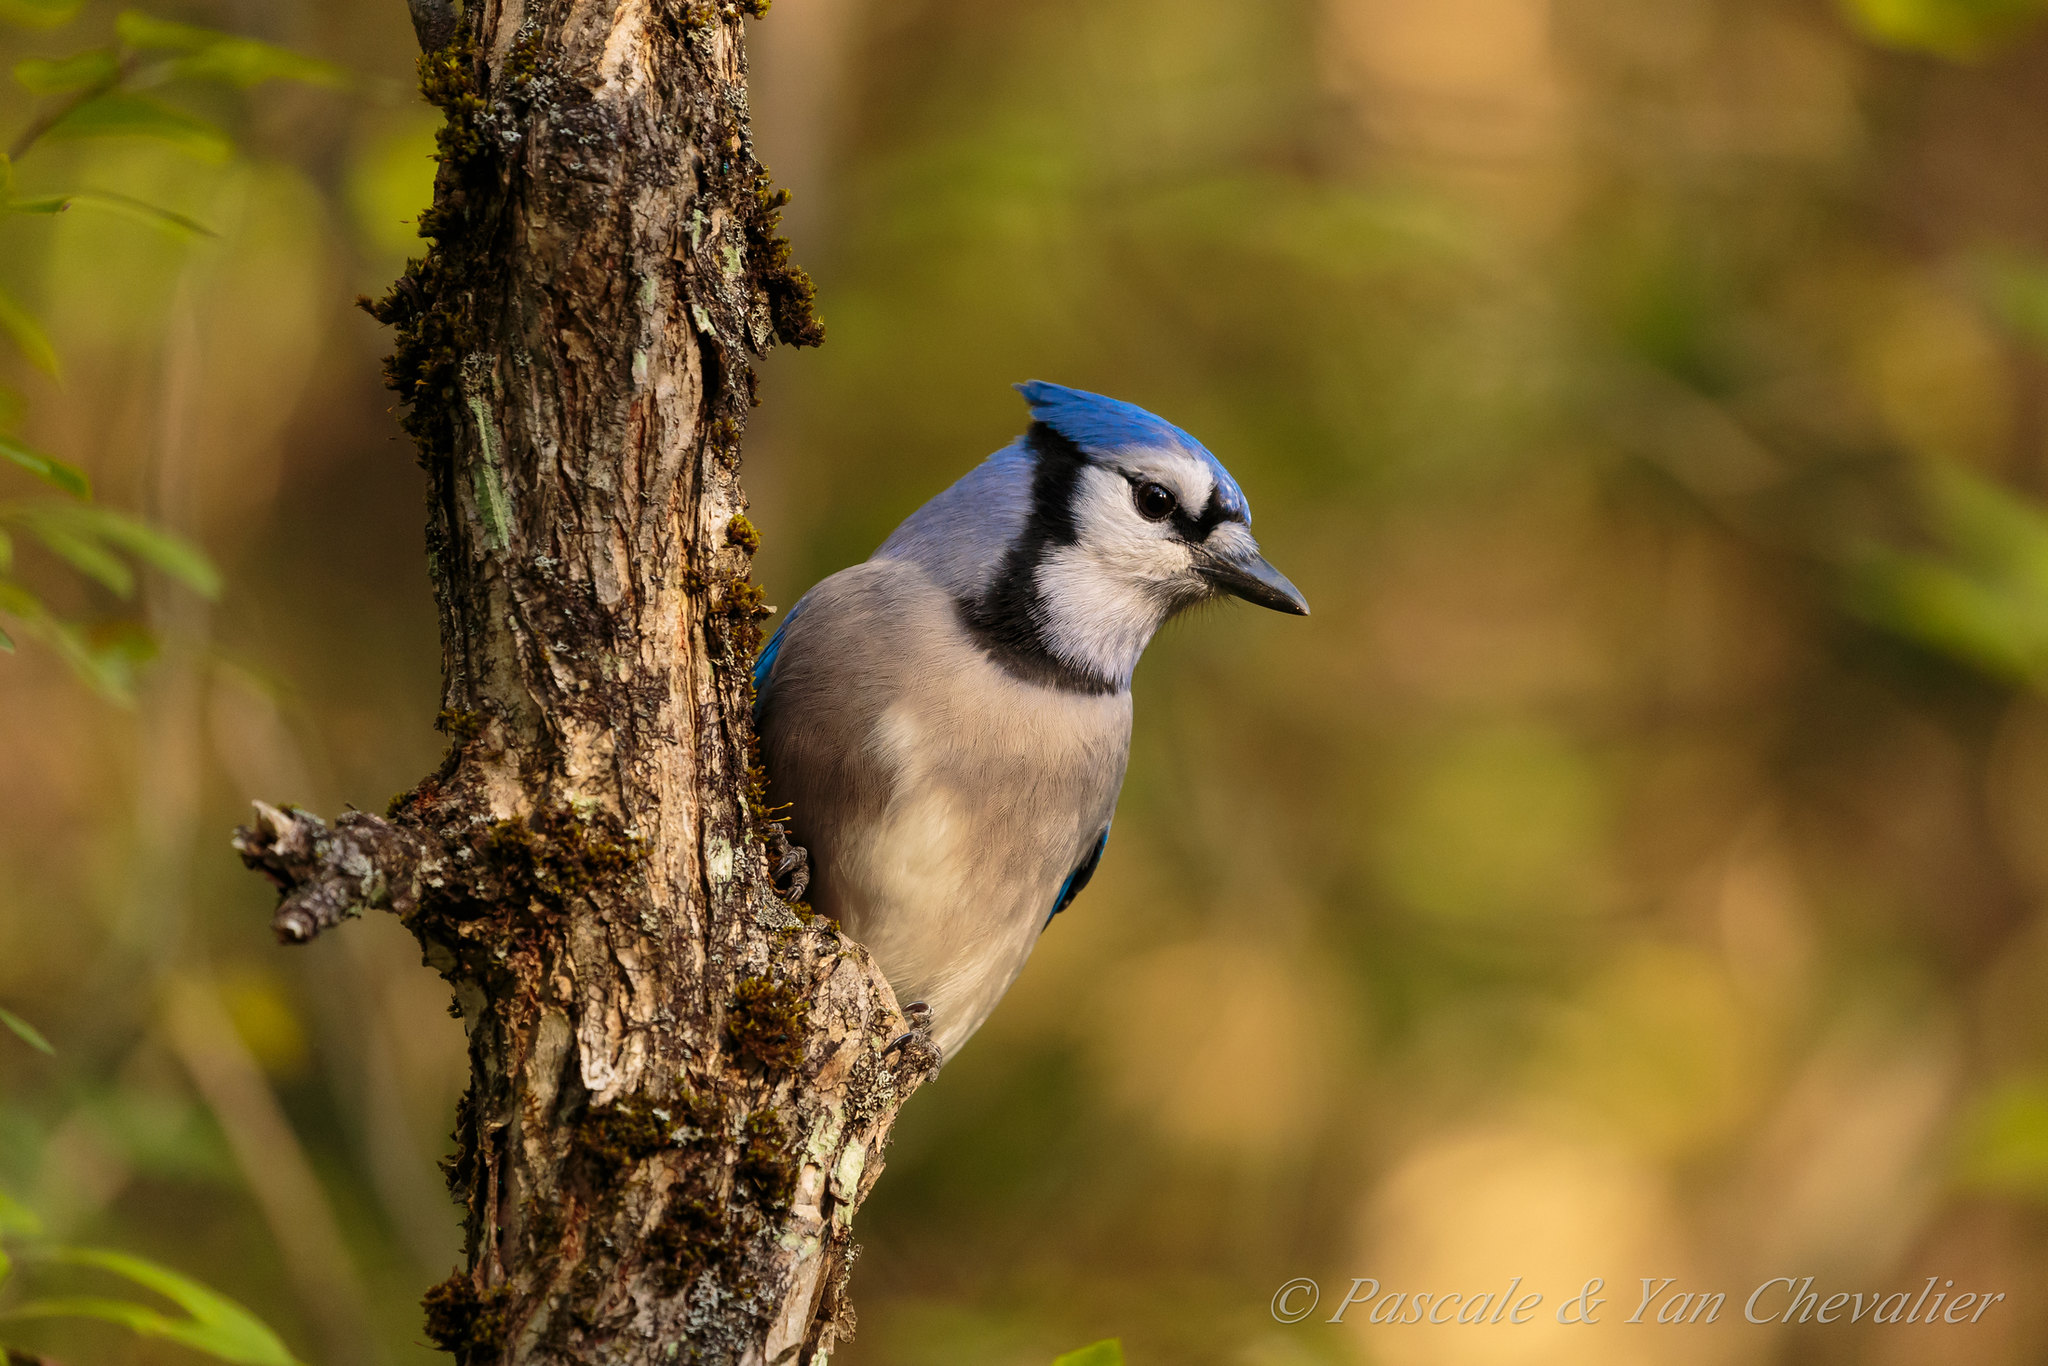 It's the blue jay laughing at us...